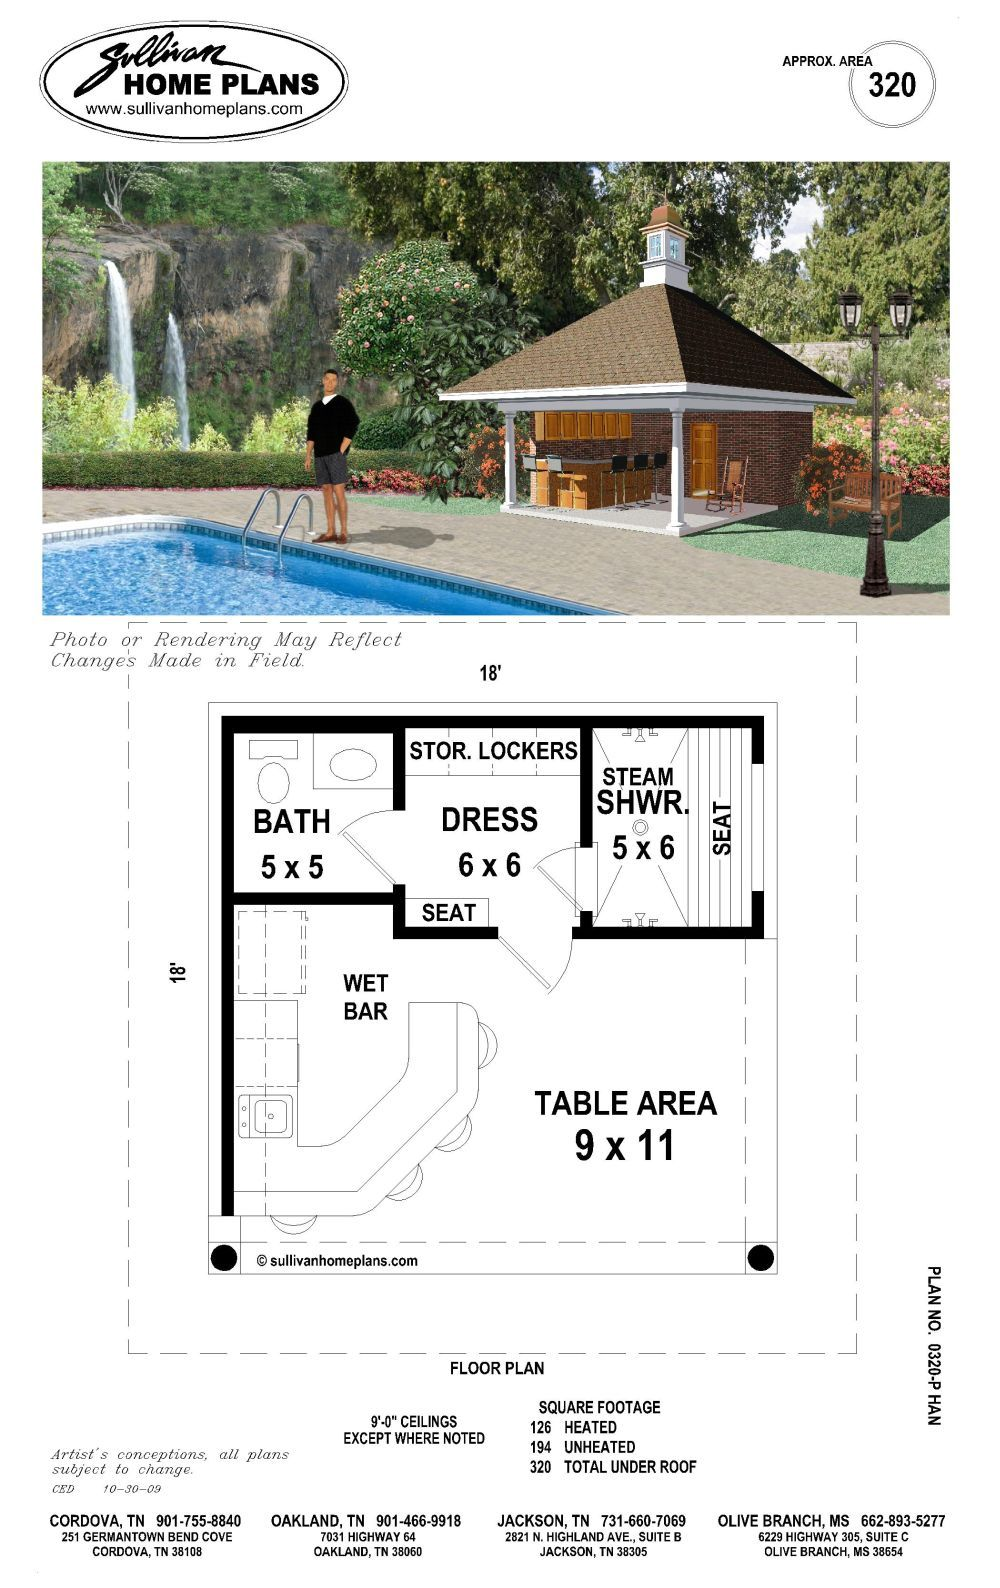 Pin By Abigail Butorac On Pool Ideas Pool House Plans Pool House Pool Houses